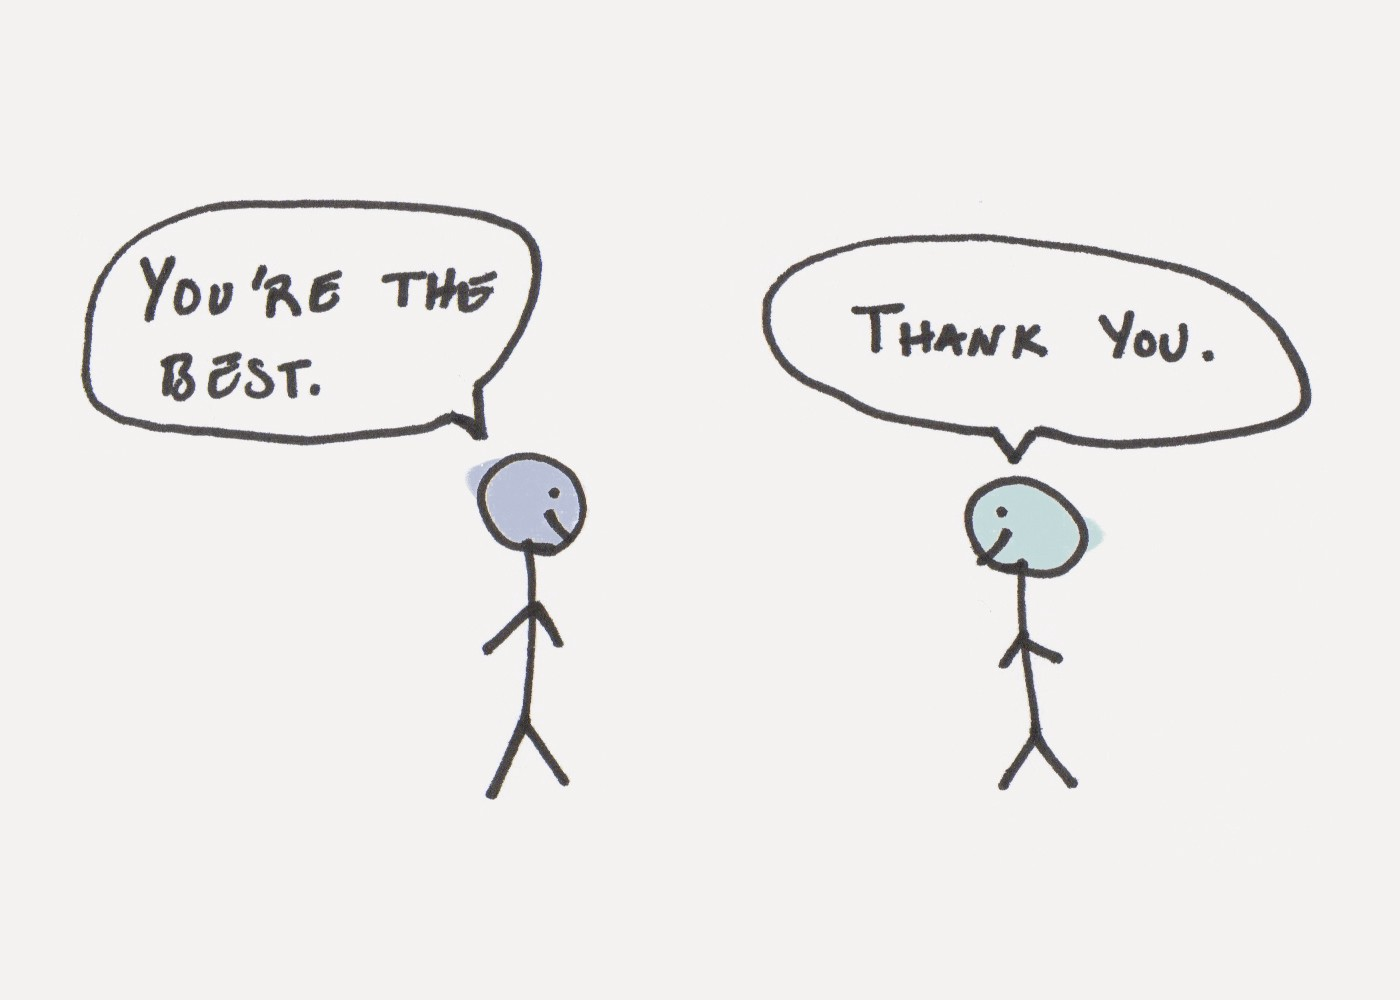 Make Your Life Better By Saying Thank You In These 7